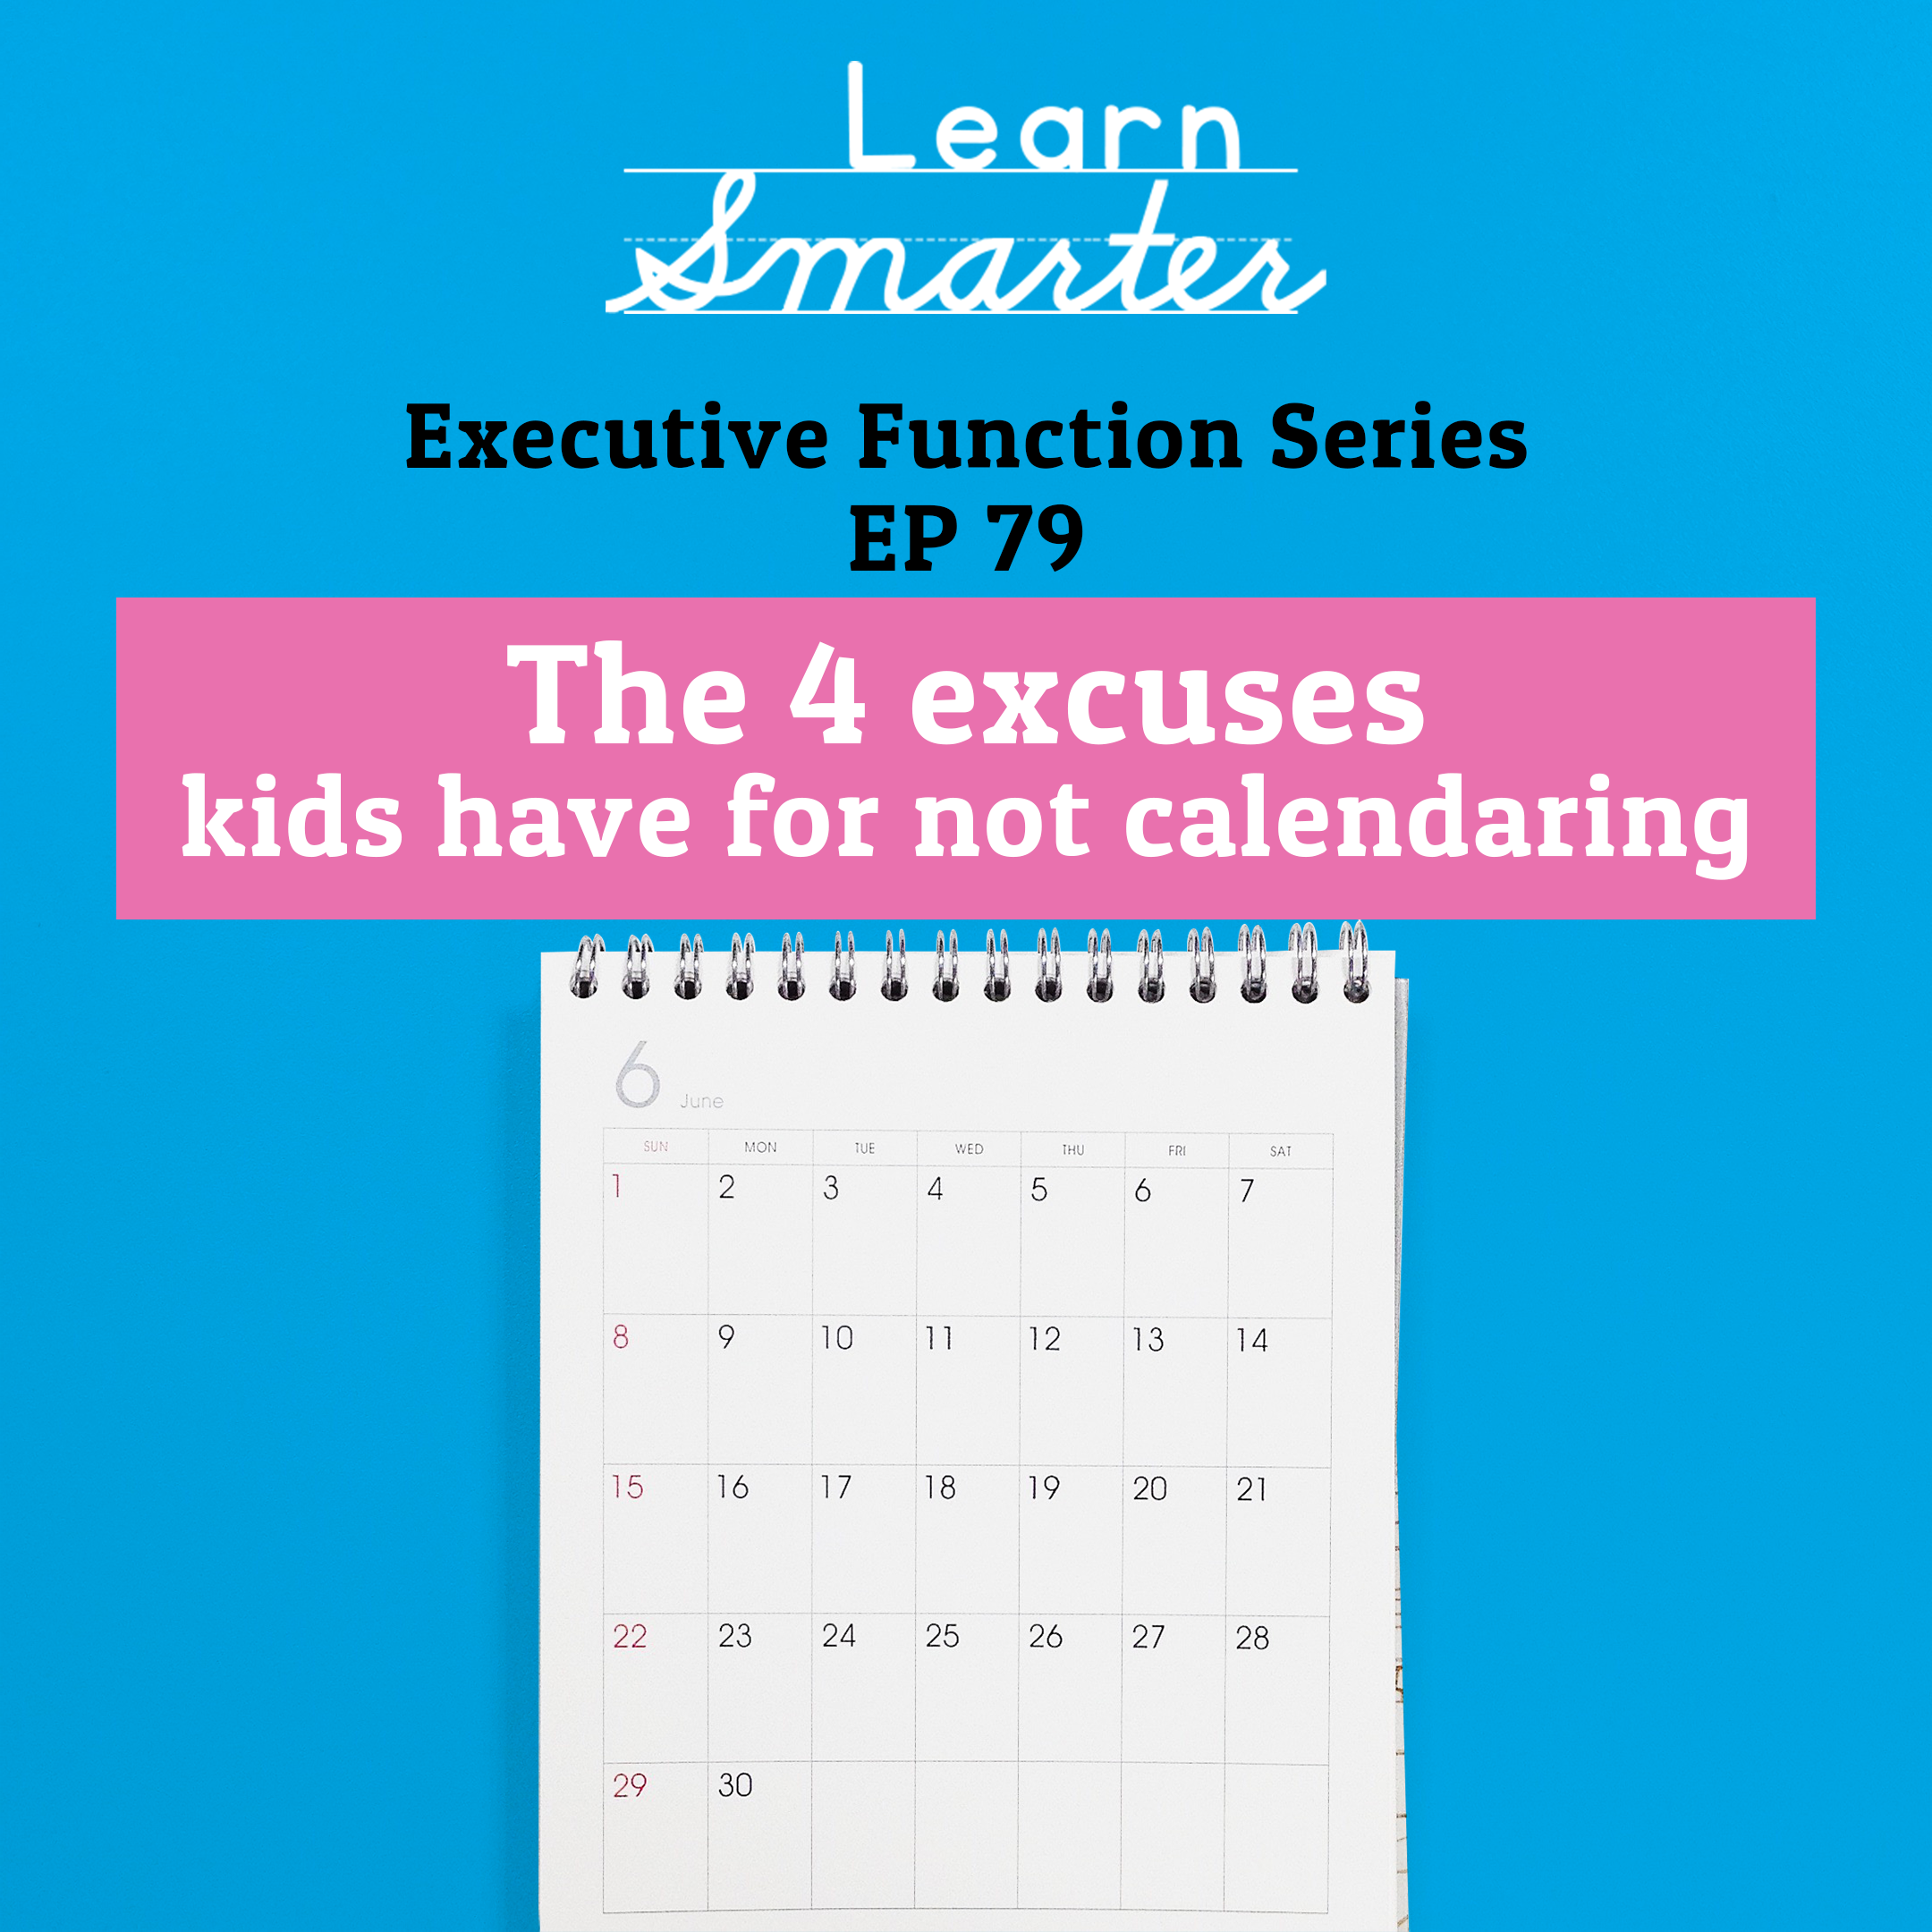 79: The 4 excuses kids have for not calendaring (Executive Function Series)